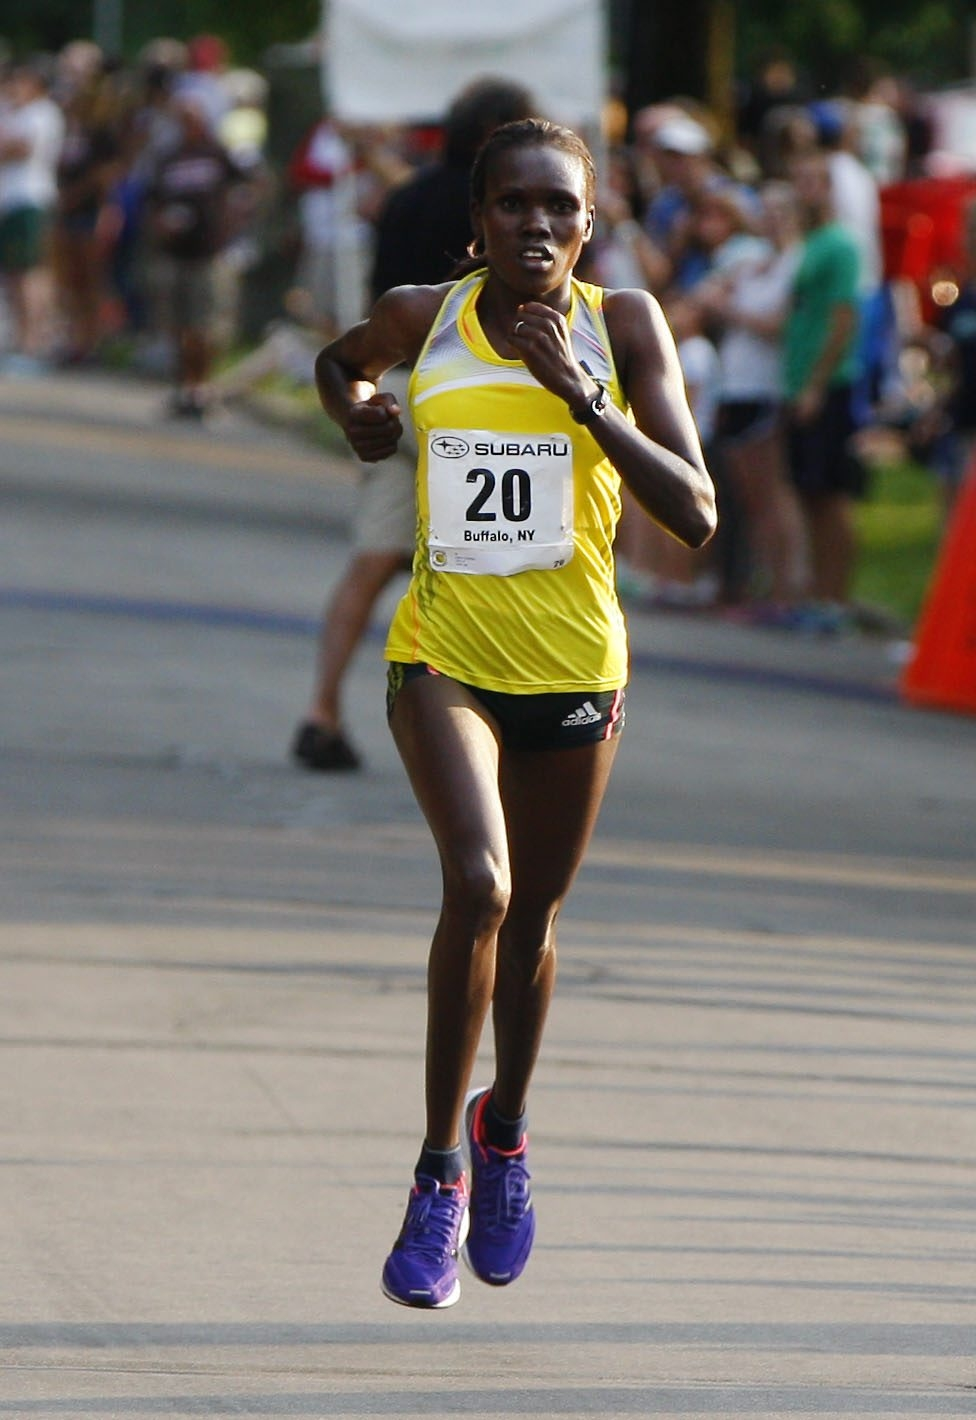 Cynthia Limo of Kenya set a Subaru Buffalo 4-Mile Chase course record for women, covering the distance in 20 minutes and 3 seconds on Friday evening. She earned a $1,000 bonus for the record.